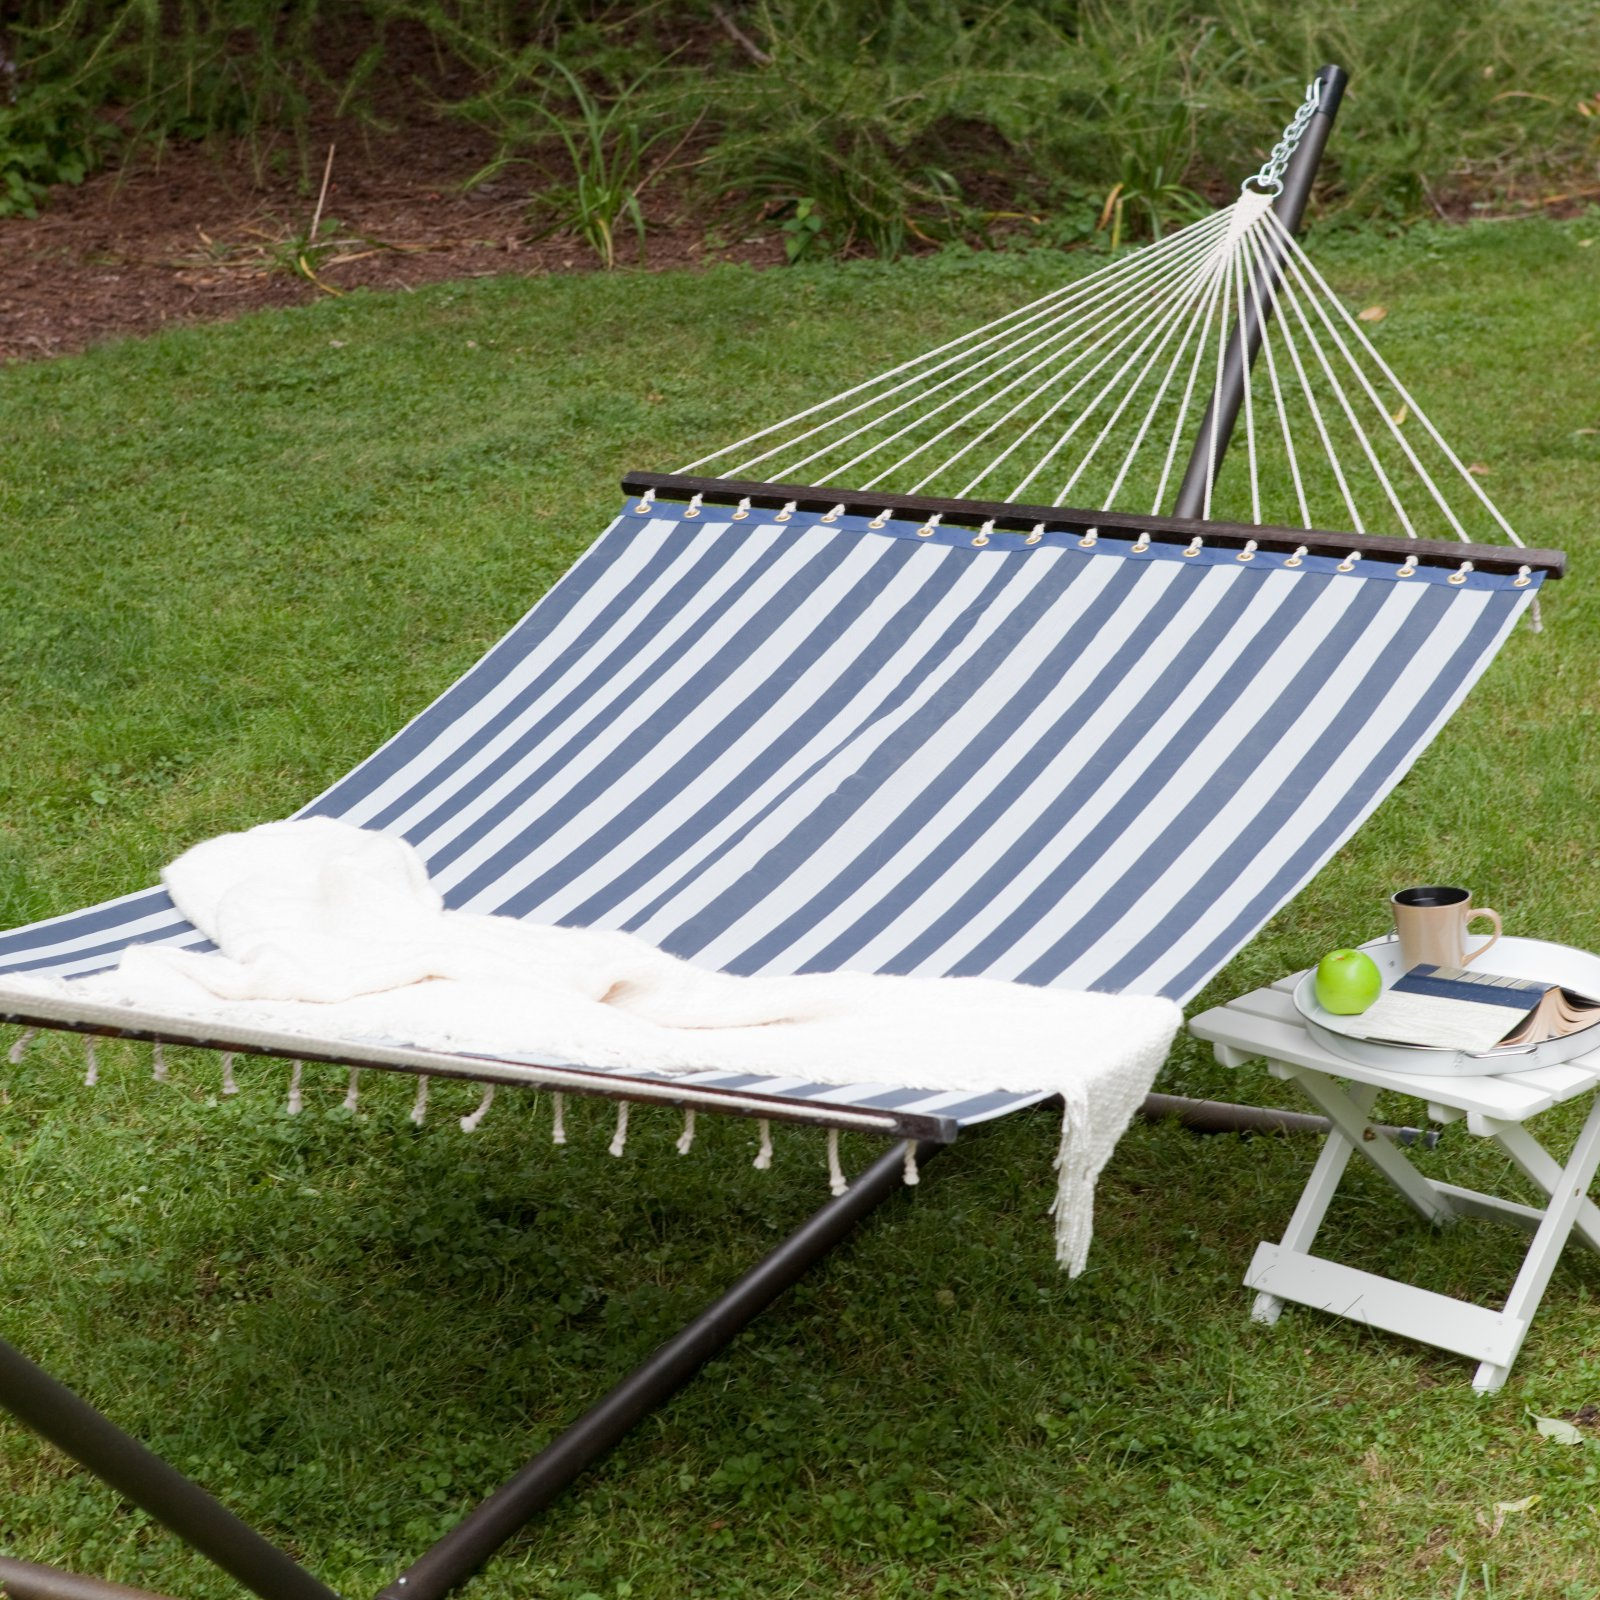 Island Bay 13 ft. Quick Dry Poolside Navy Stripes Hammock with Steel Stand